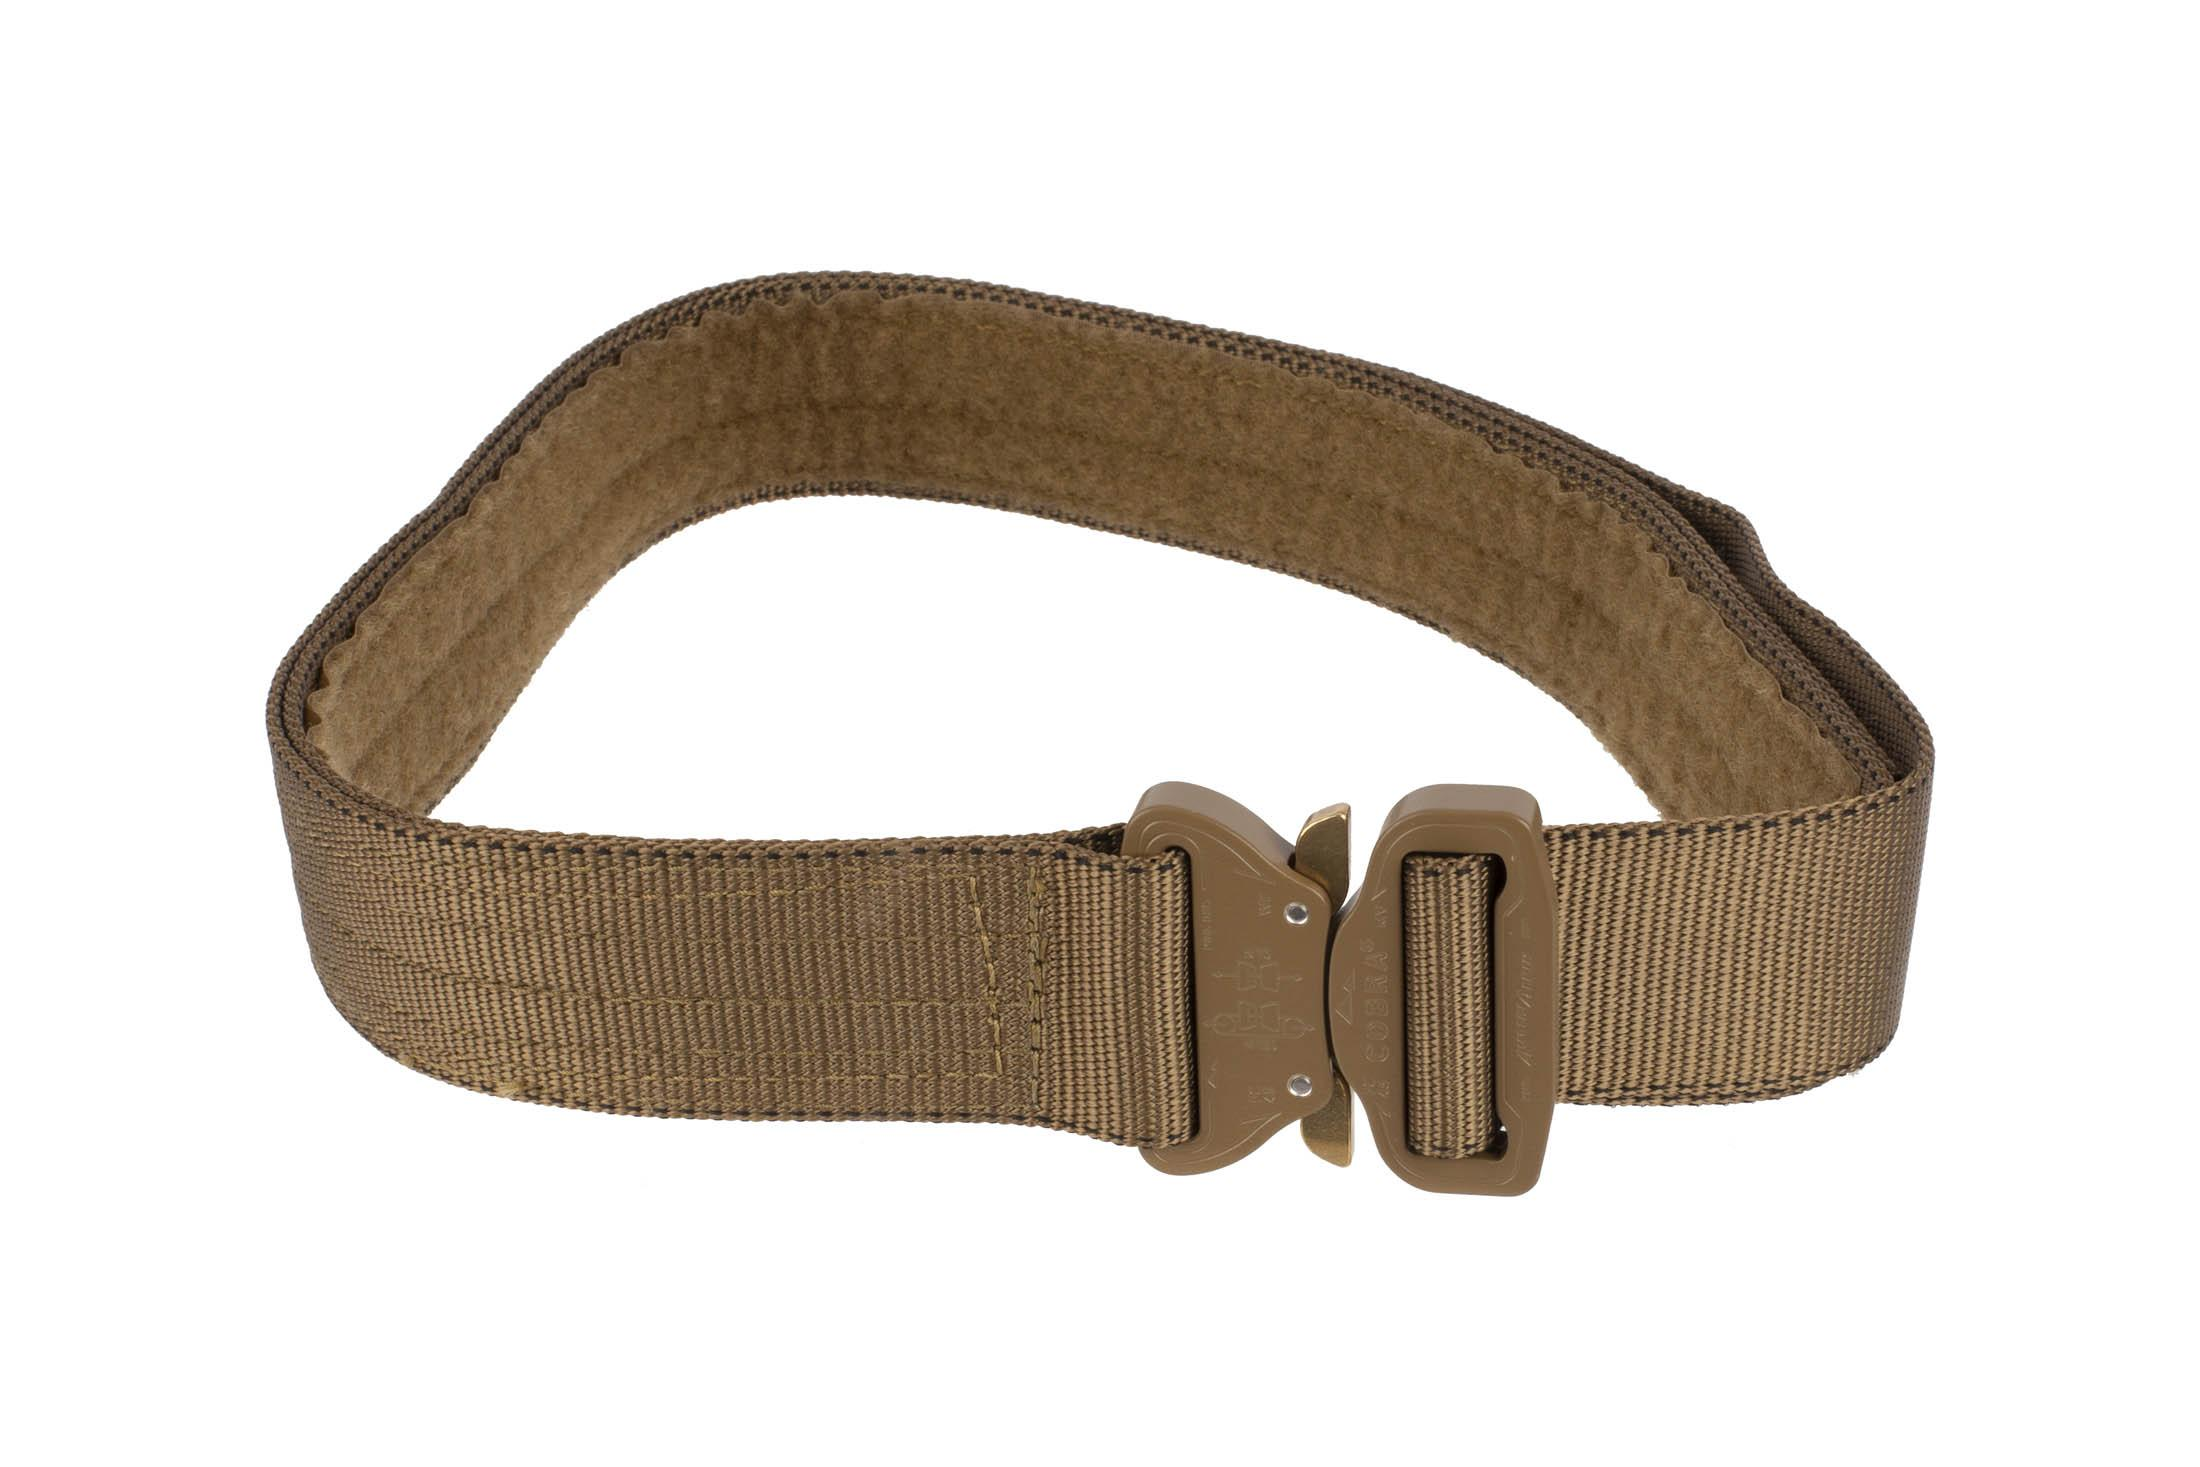 High Speed Gear 1.75in Rigger Belt coyote brown is equipped with a small Cobra Buckle.